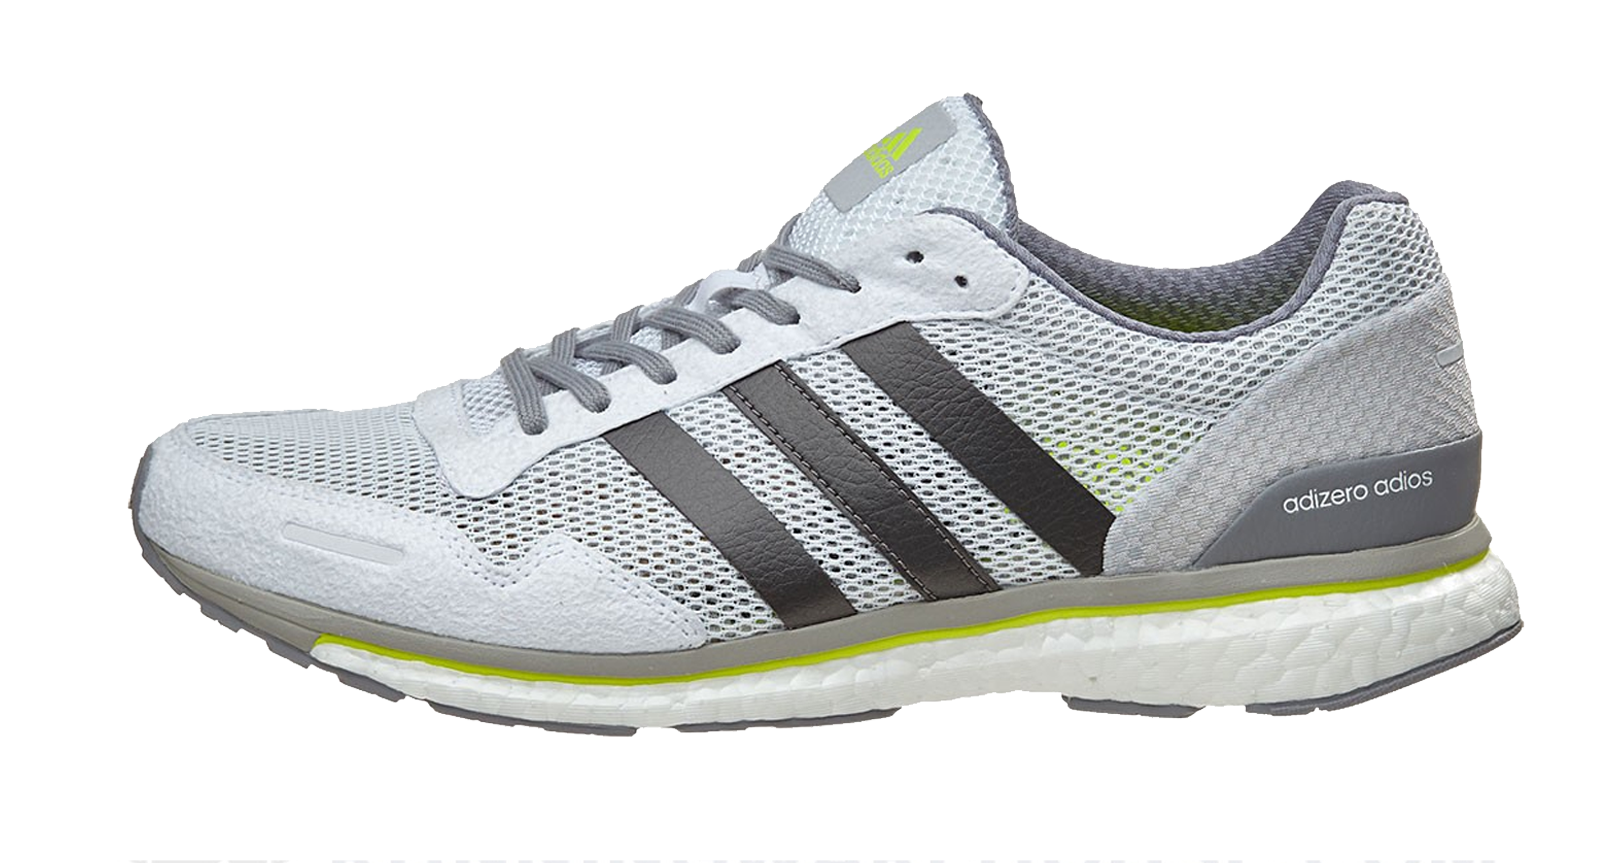 sports shoes 95667 6a60d adidas adizero adios 2017 Performance Review » Believe in ...